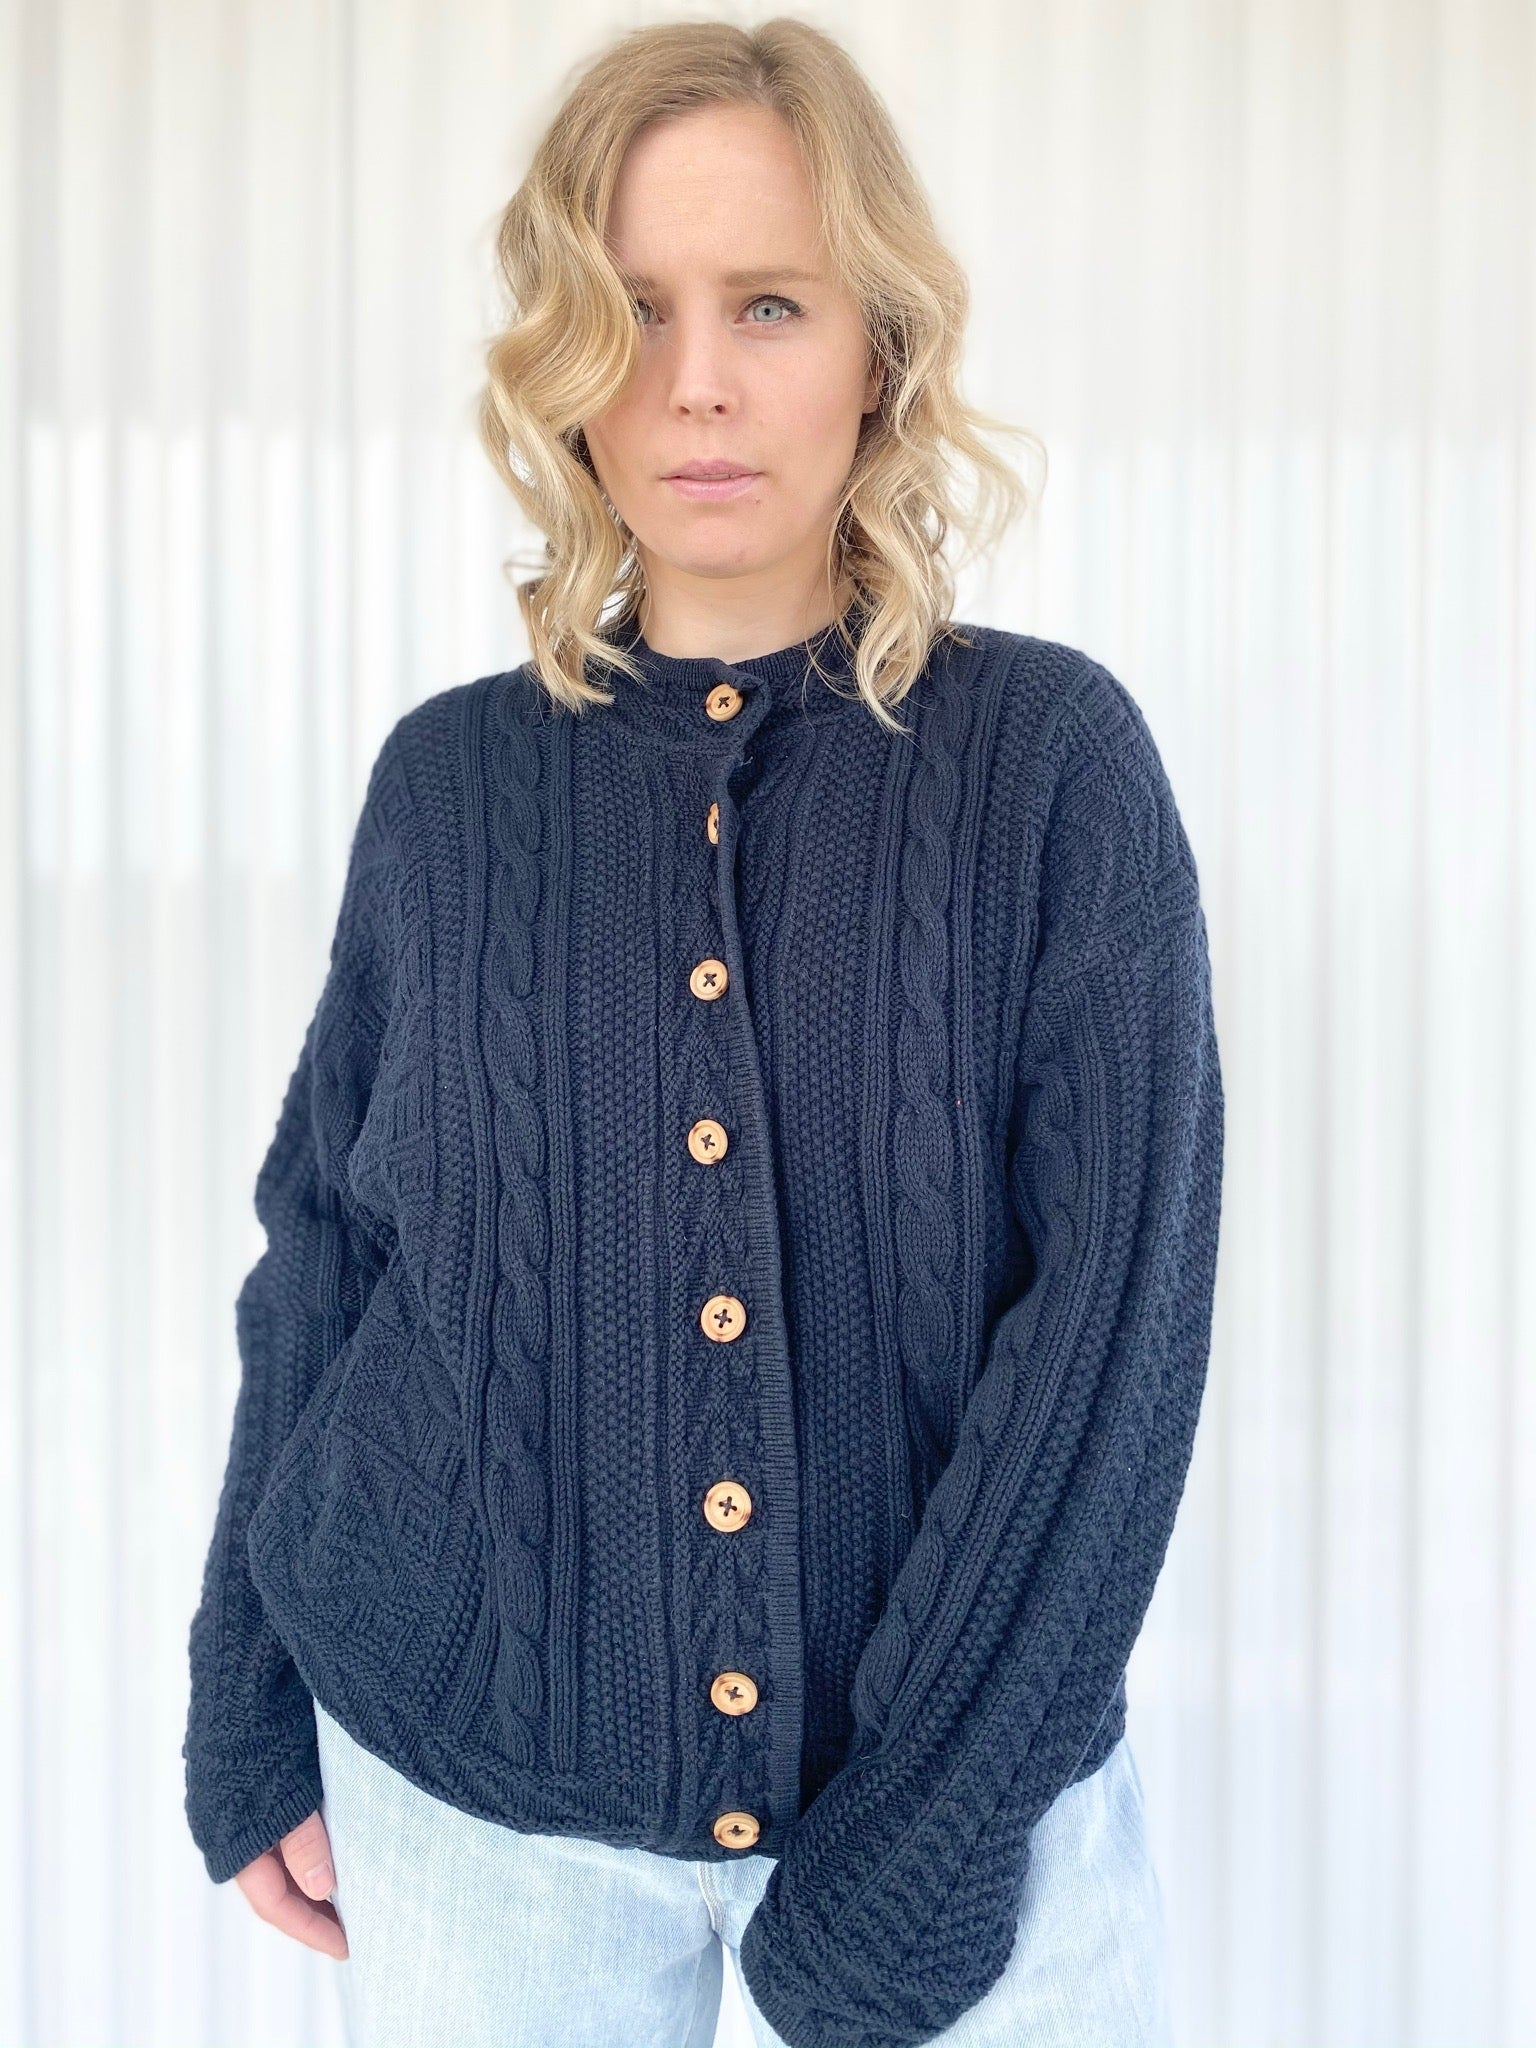 L.L. Bean Knit Cardigan with Wooden Buttons (M)